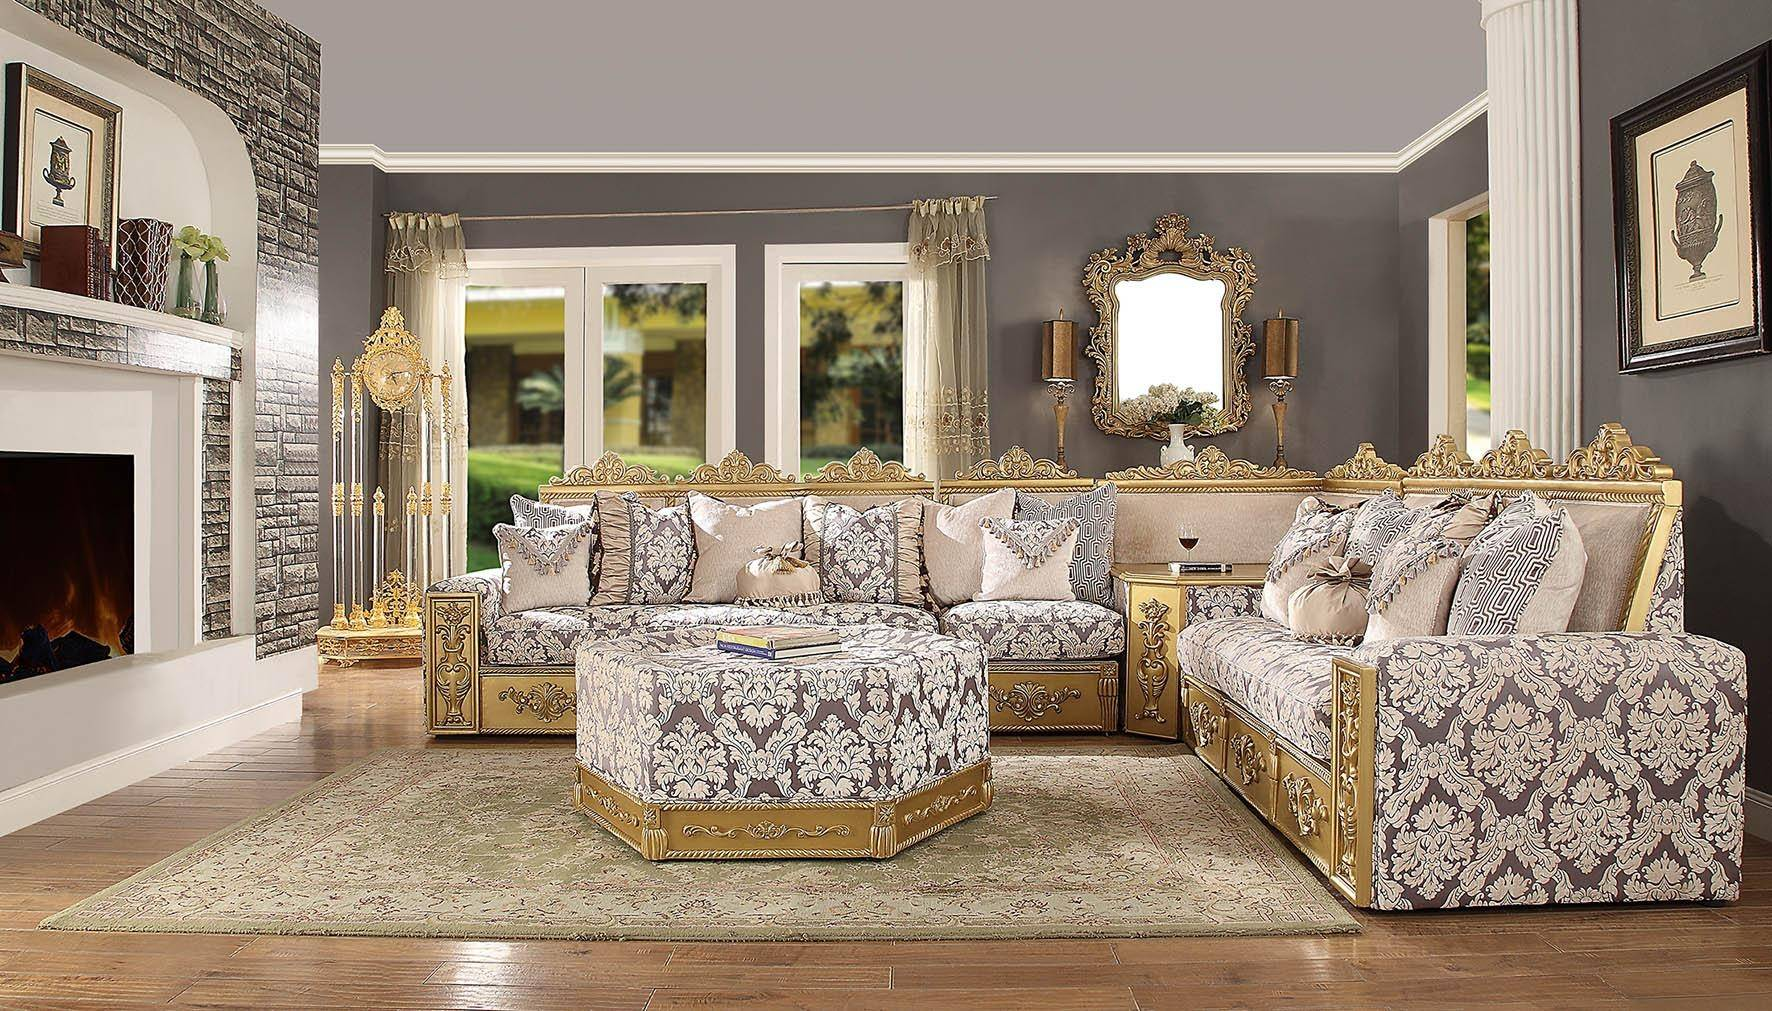 Homey Design Hd 459 Victorian Sophisticated Print Upholstery Antique Gold Carved Wood Sectional Sofa And